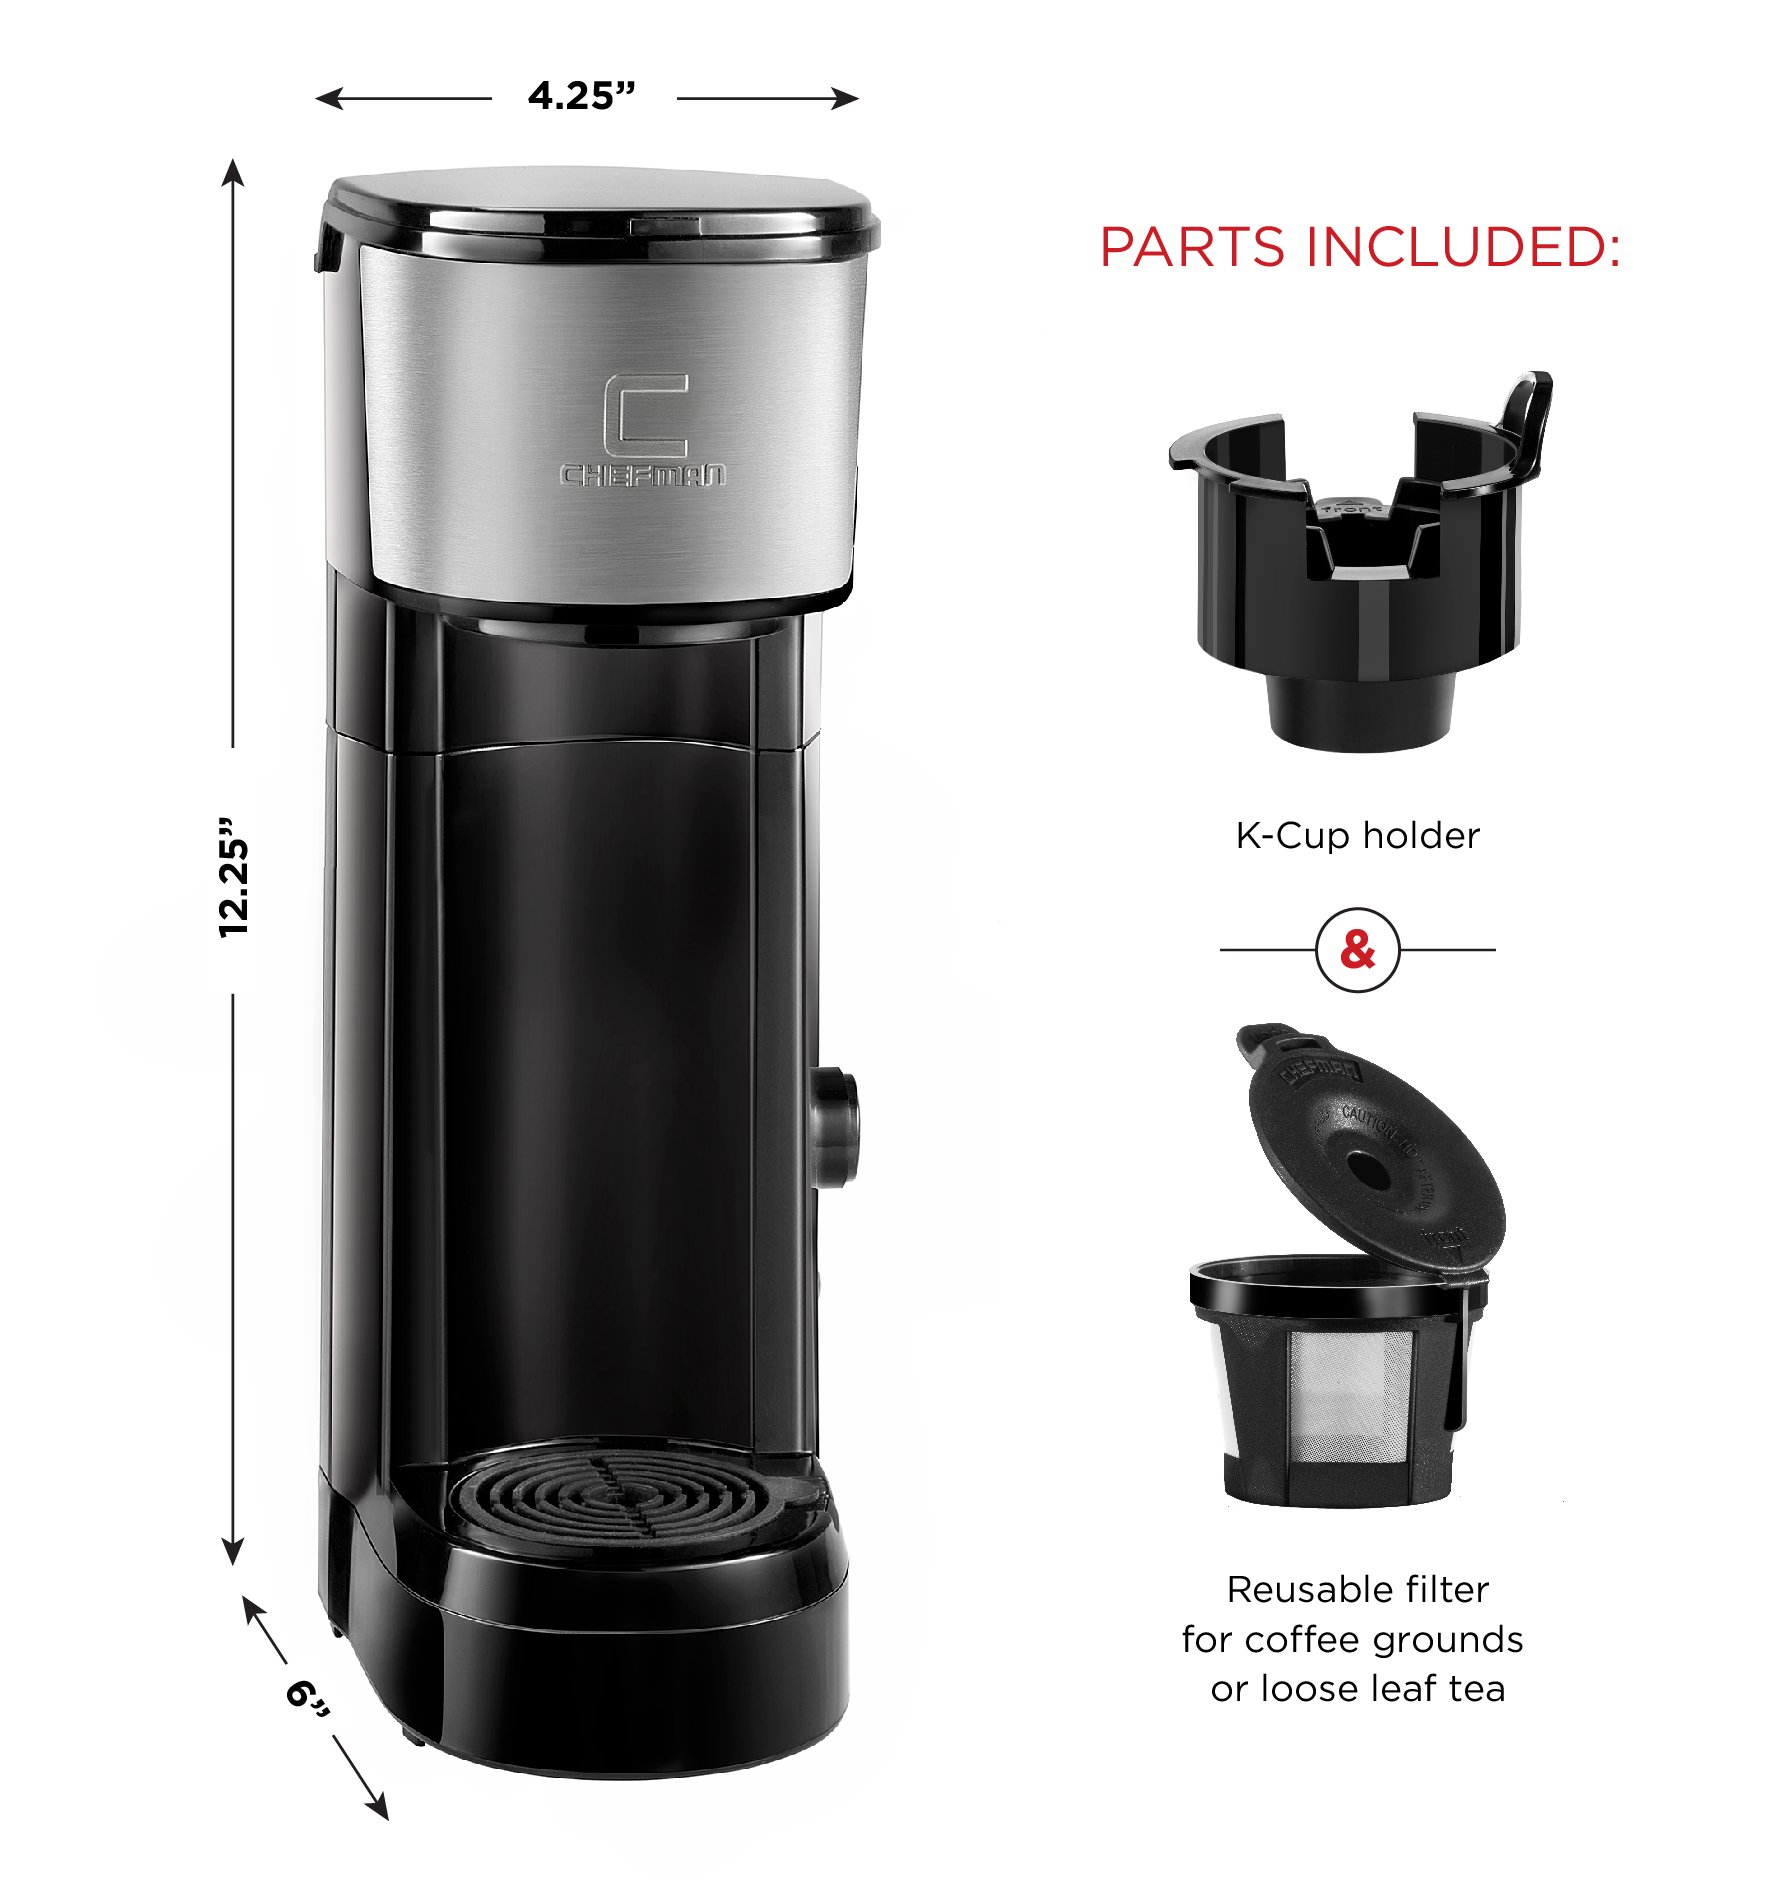 Chefman Coffee Maker K-Cup InstaBrew Brewer - Free Filter Included For Use With Coffee Grounds - Instant Reboil - Single Serve-Mug NOT Included by Chefman (Image #2)